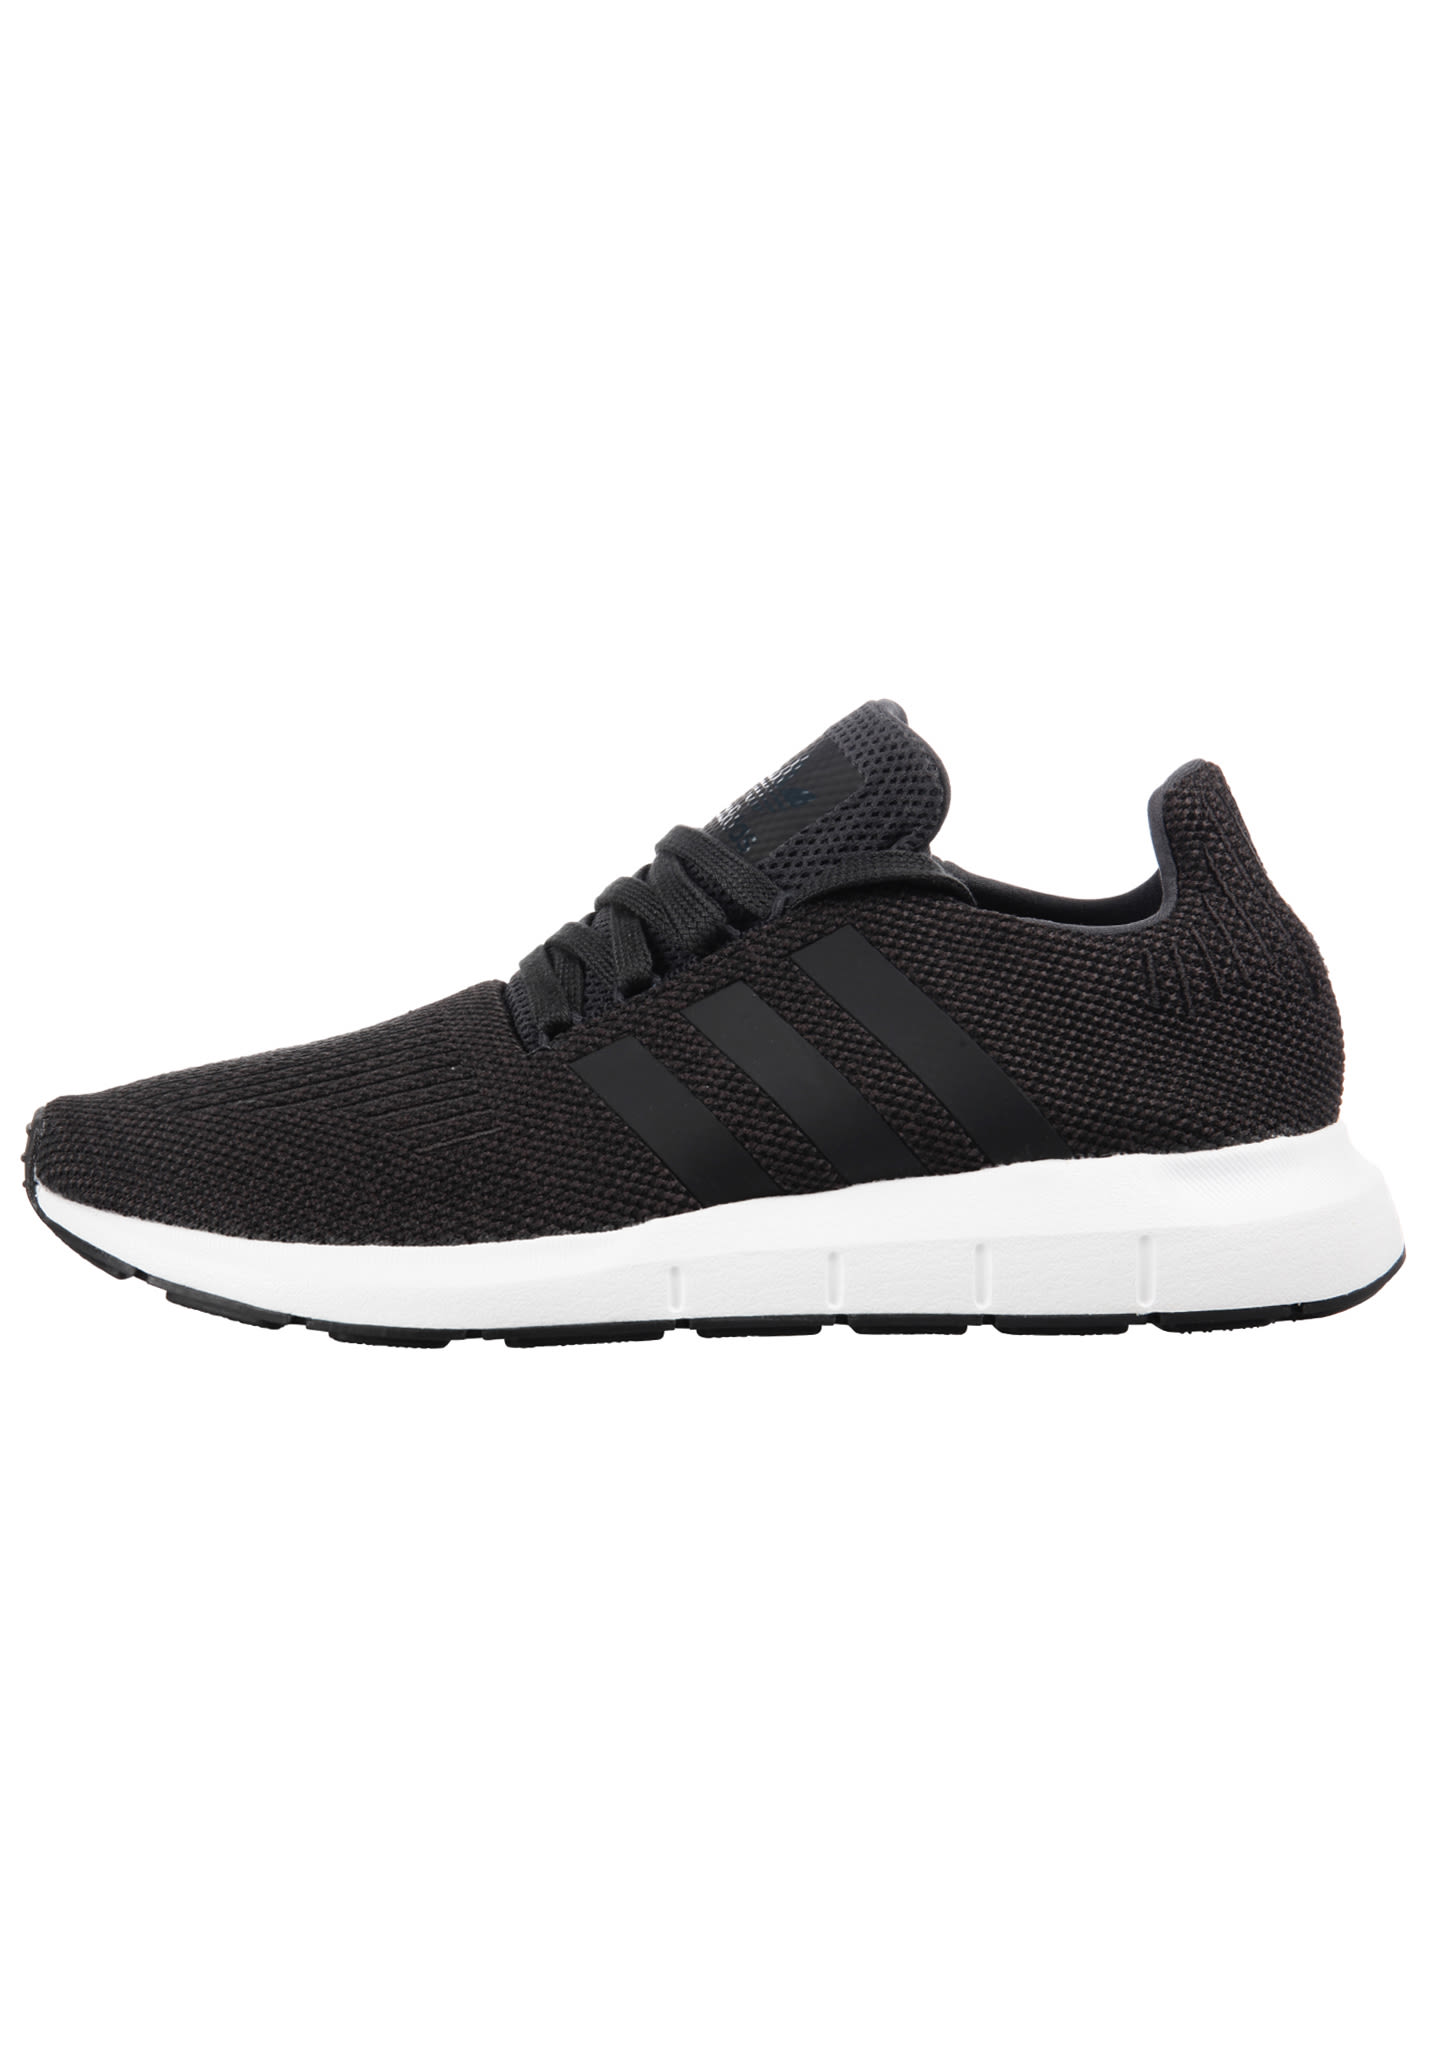 adidas Originals Swift Run - Sneaker für Herren - Schwarz